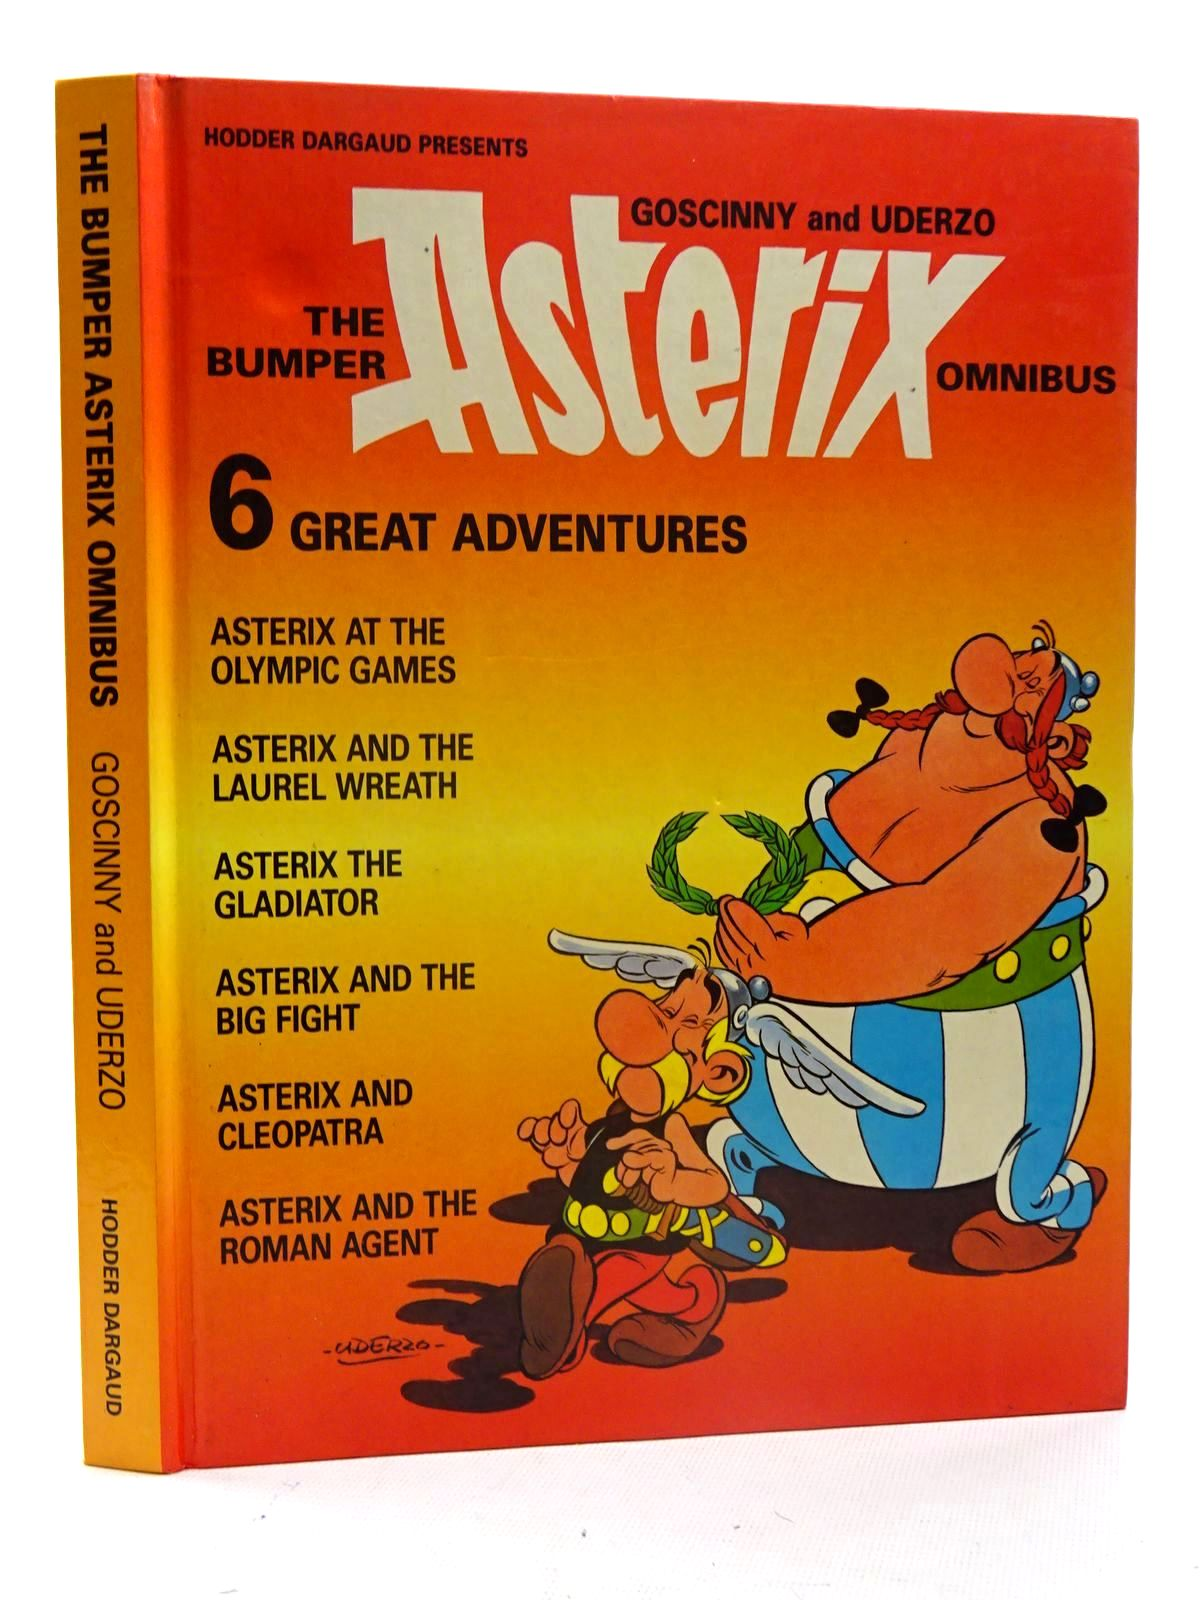 Photo of THE BUMPER ASTERIX OMNIBUS written by Goscinny, Rene illustrated by Uderzo, Albert published by Hodder Dargaud (STOCK CODE: 1816217)  for sale by Stella & Rose's Books